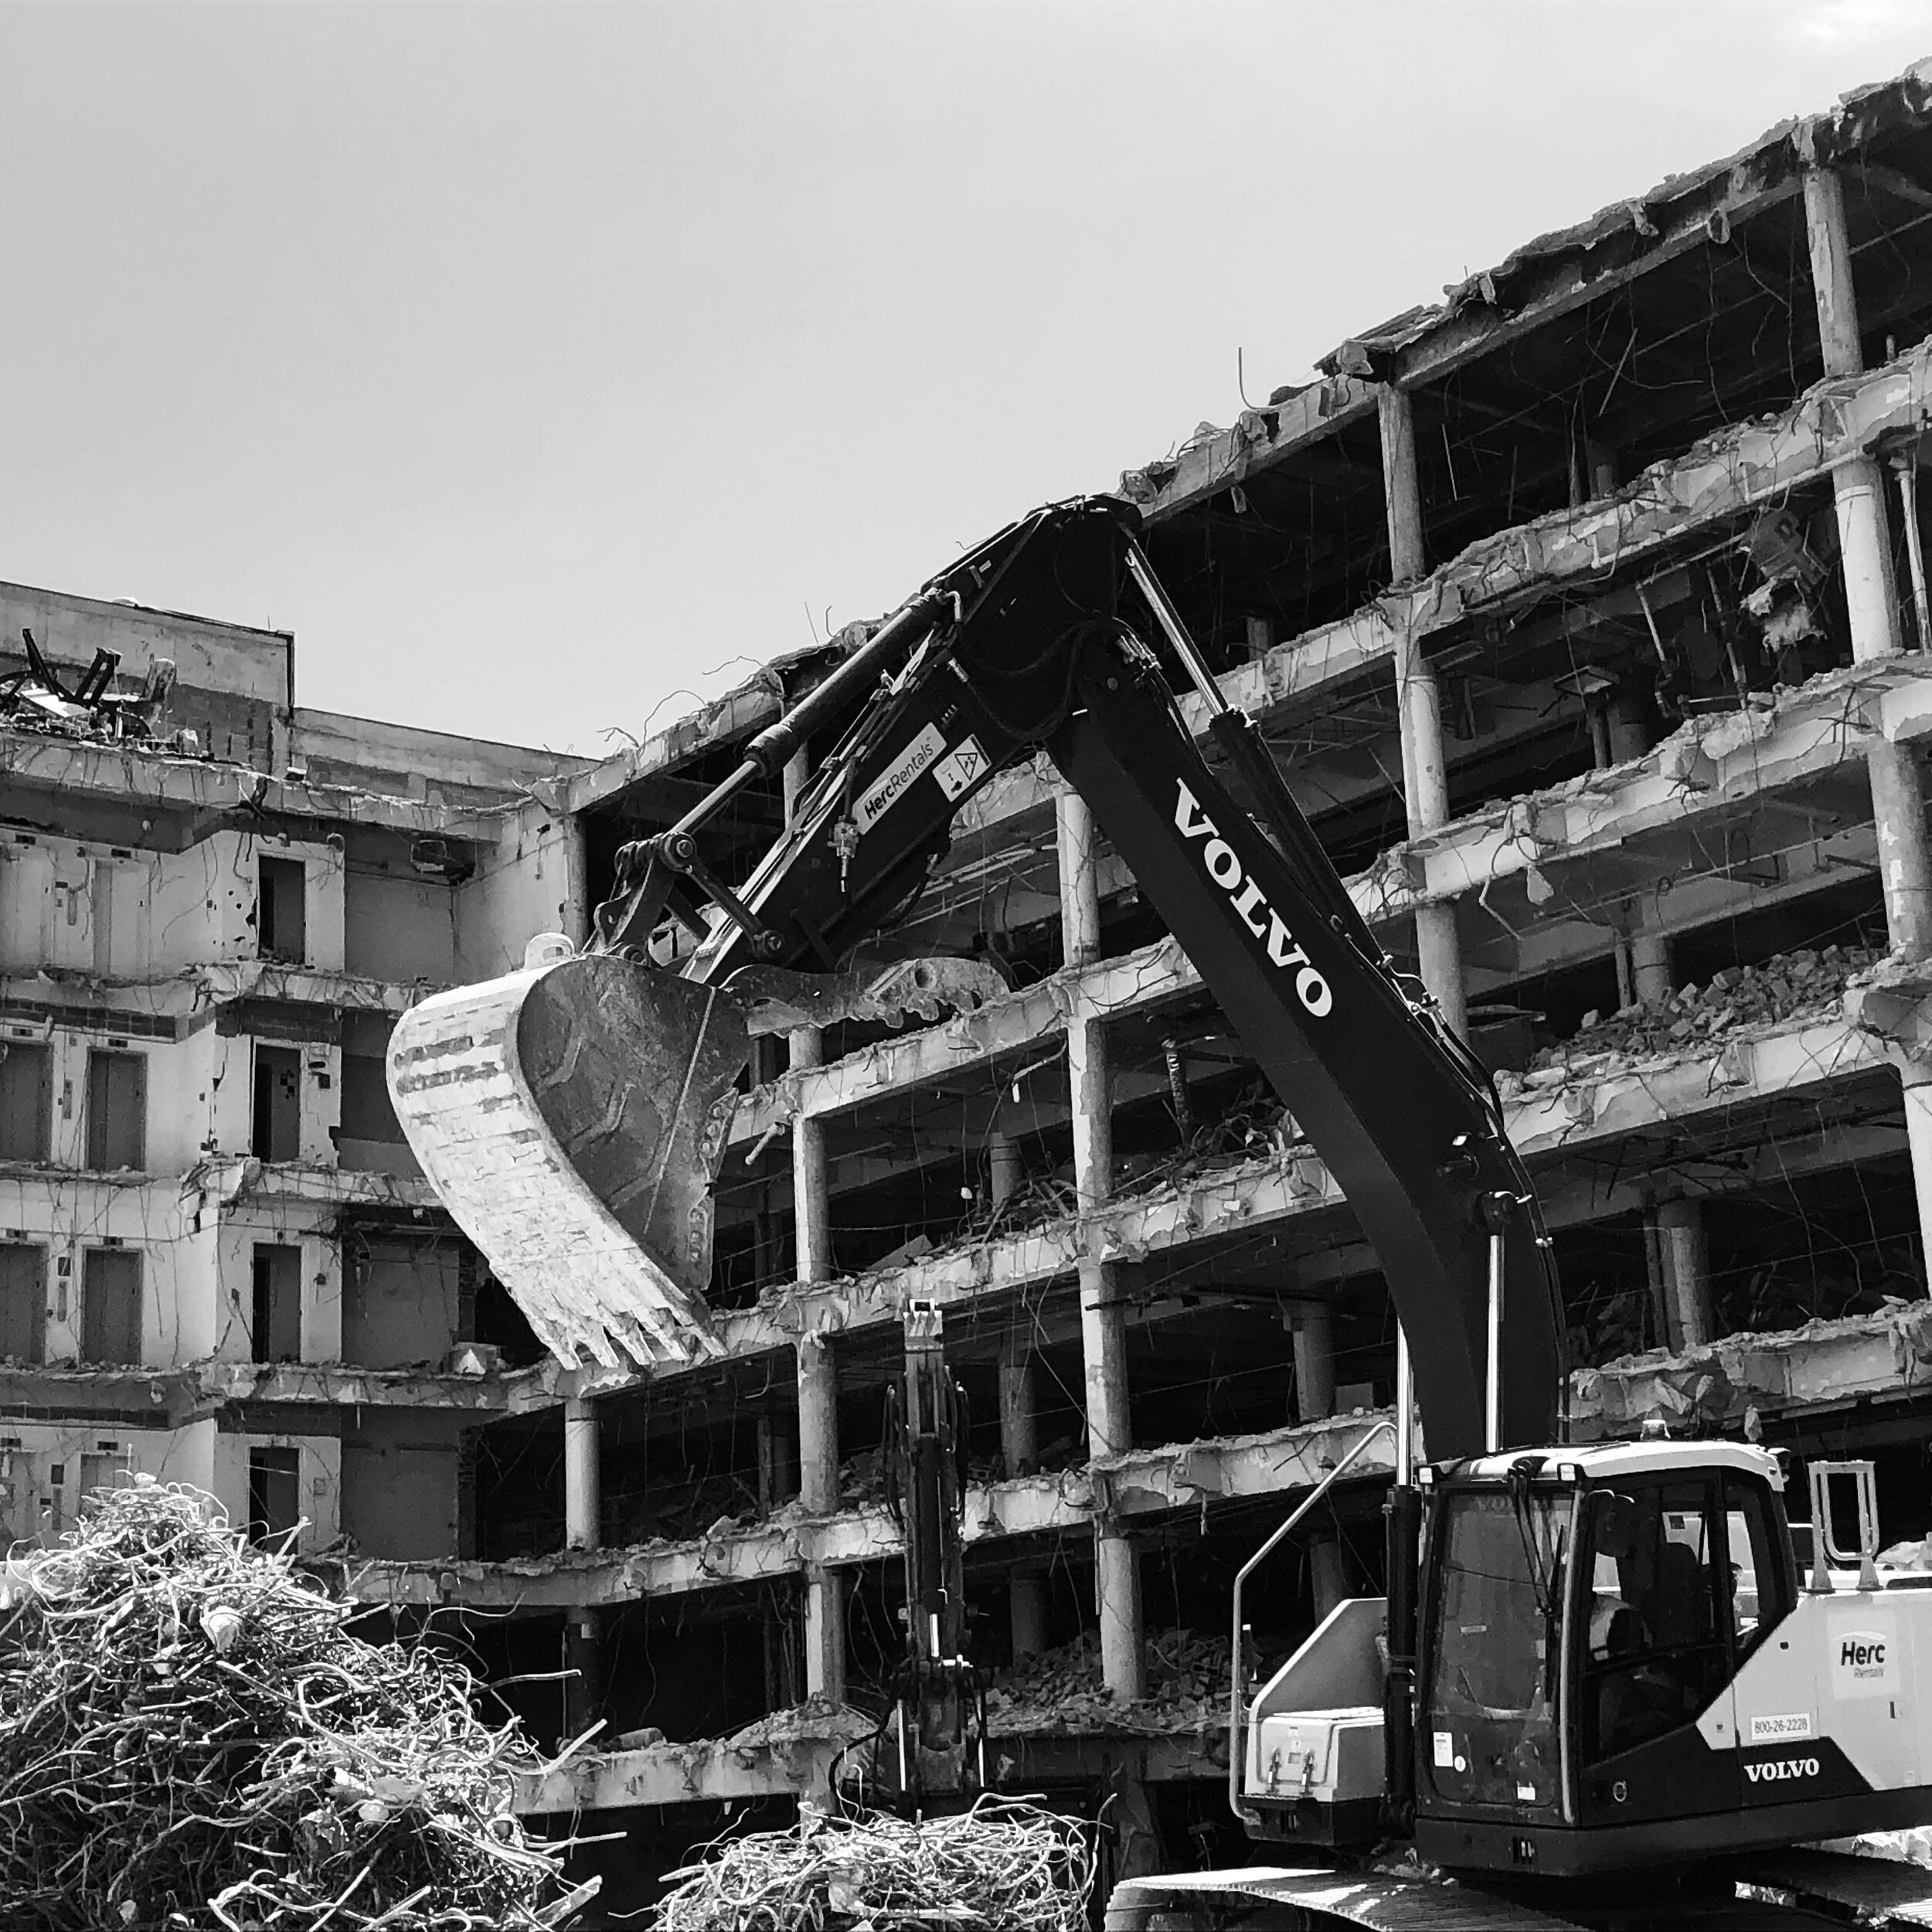 Figure 2. Demolition of Kell Hall, 2019. Photograph by Alex Sayf Cummings.